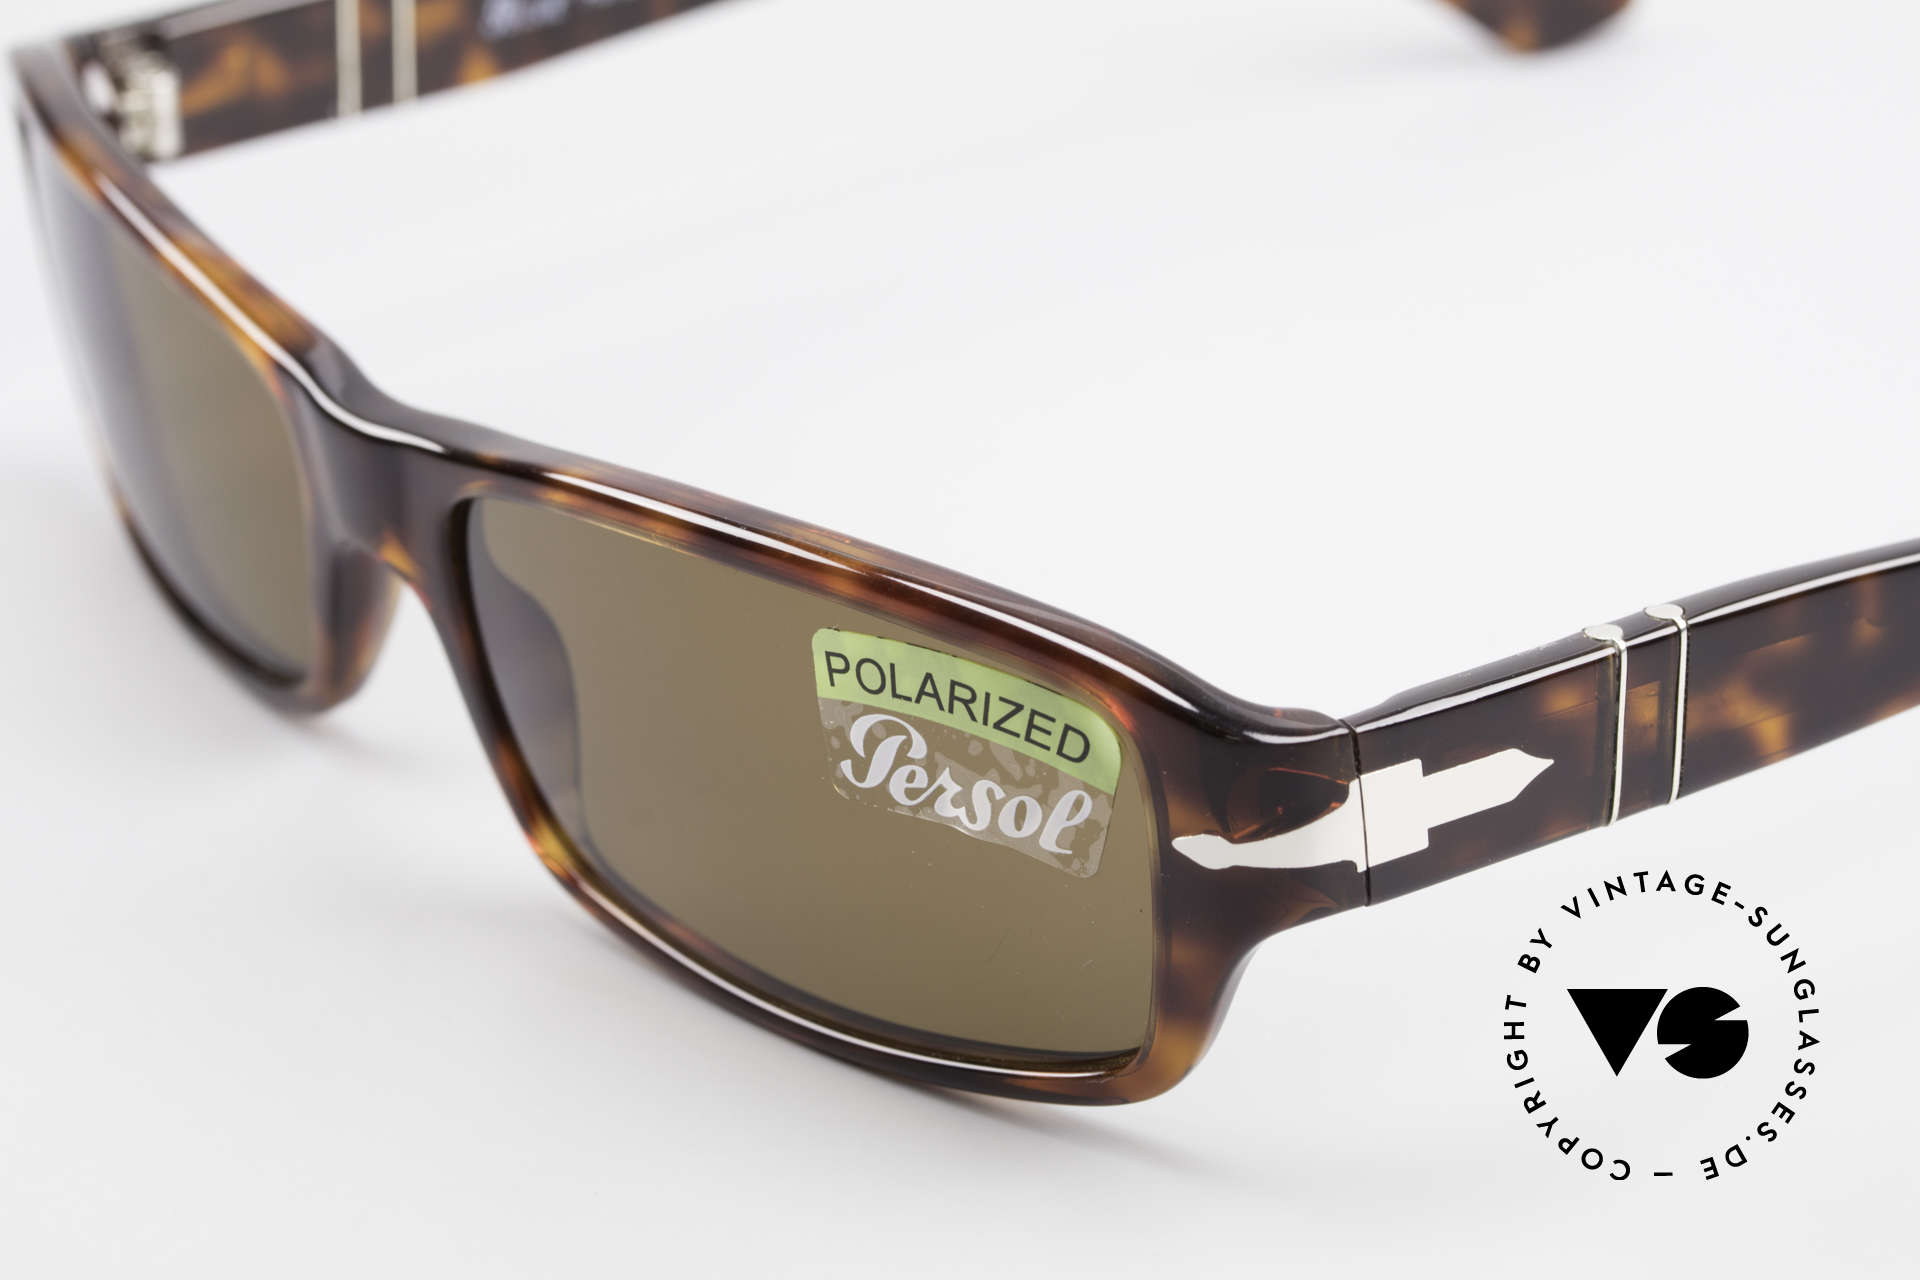 Persol 2786 Classic Sunglasses Polarized, unworn (like all our classic PERSOL sunglasses), Made for Men and Women